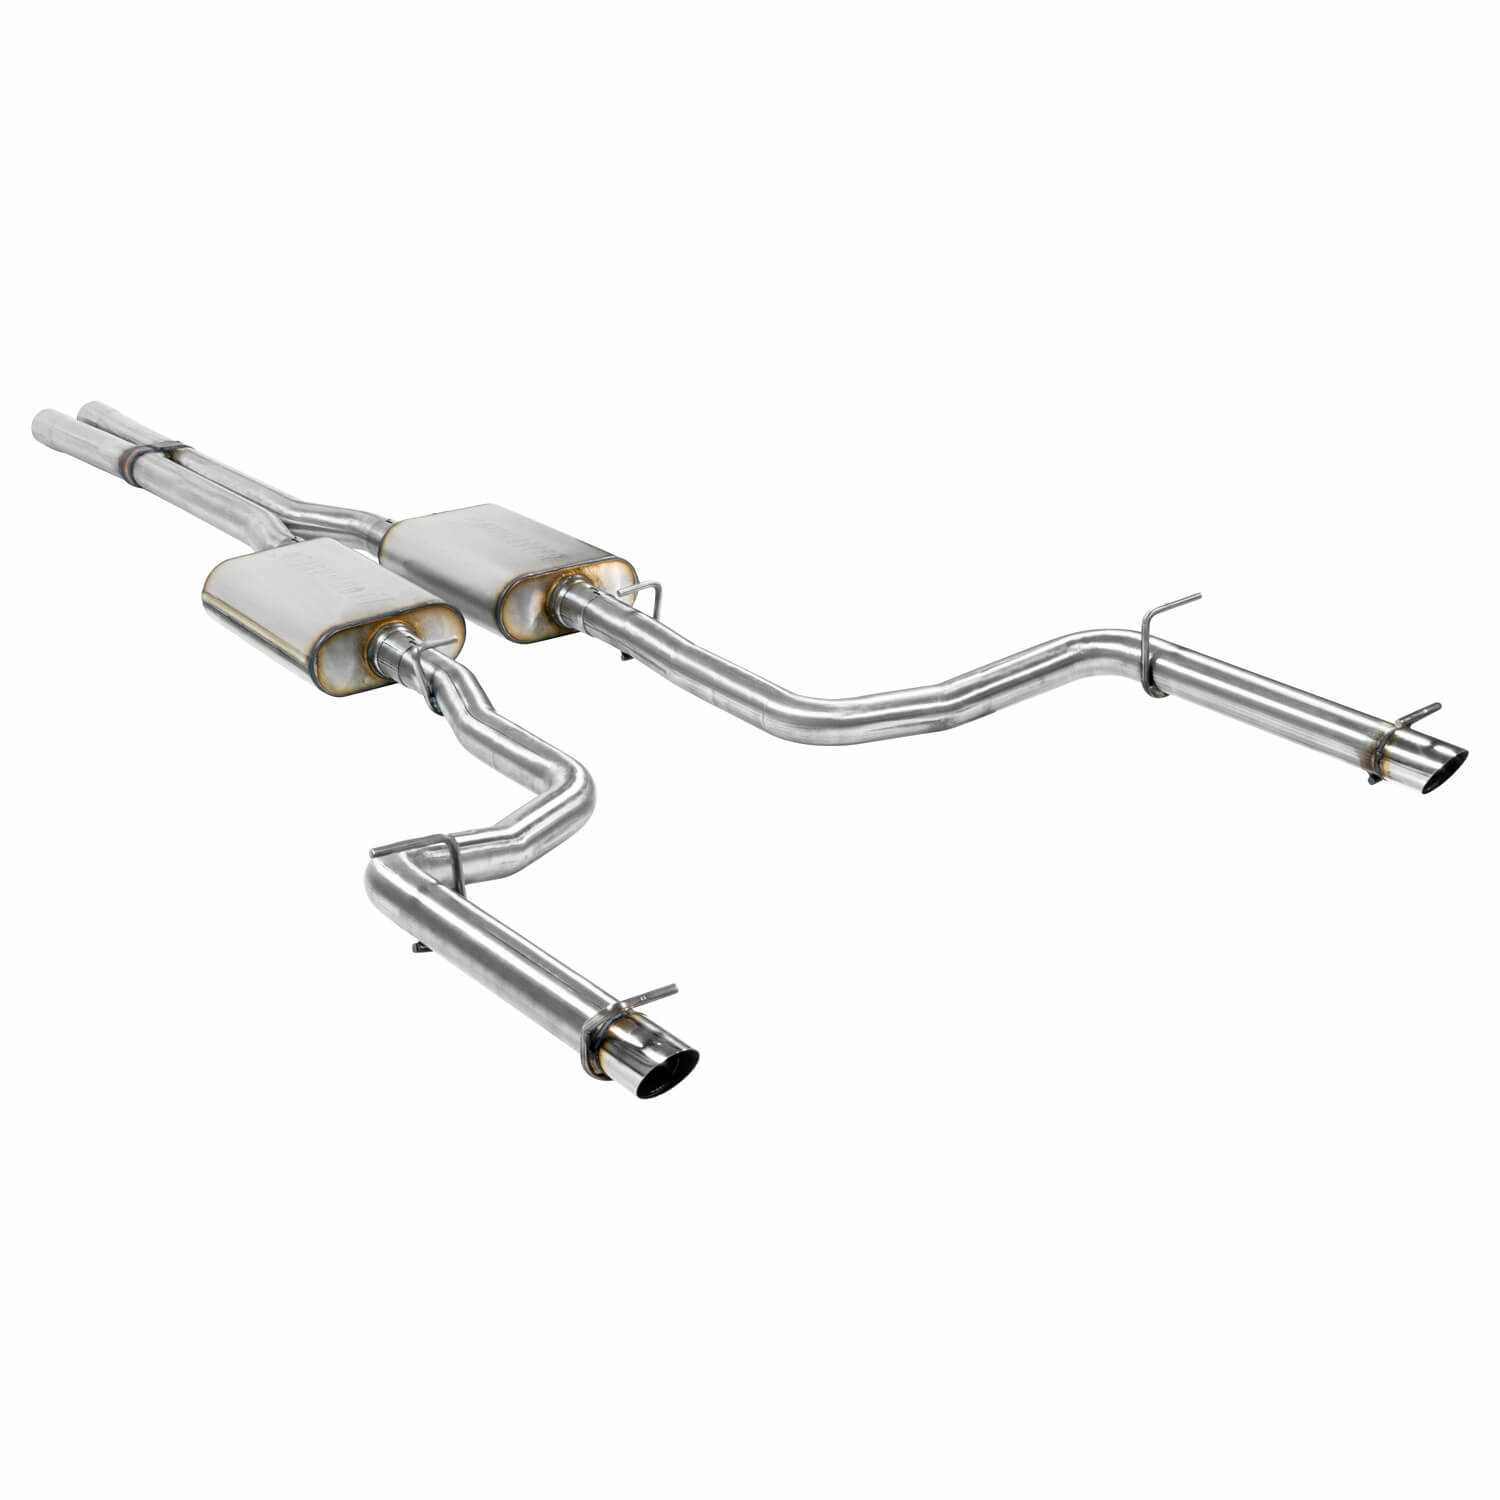 717831 Flowmaster FlowFX Cat-Back Exhaust System